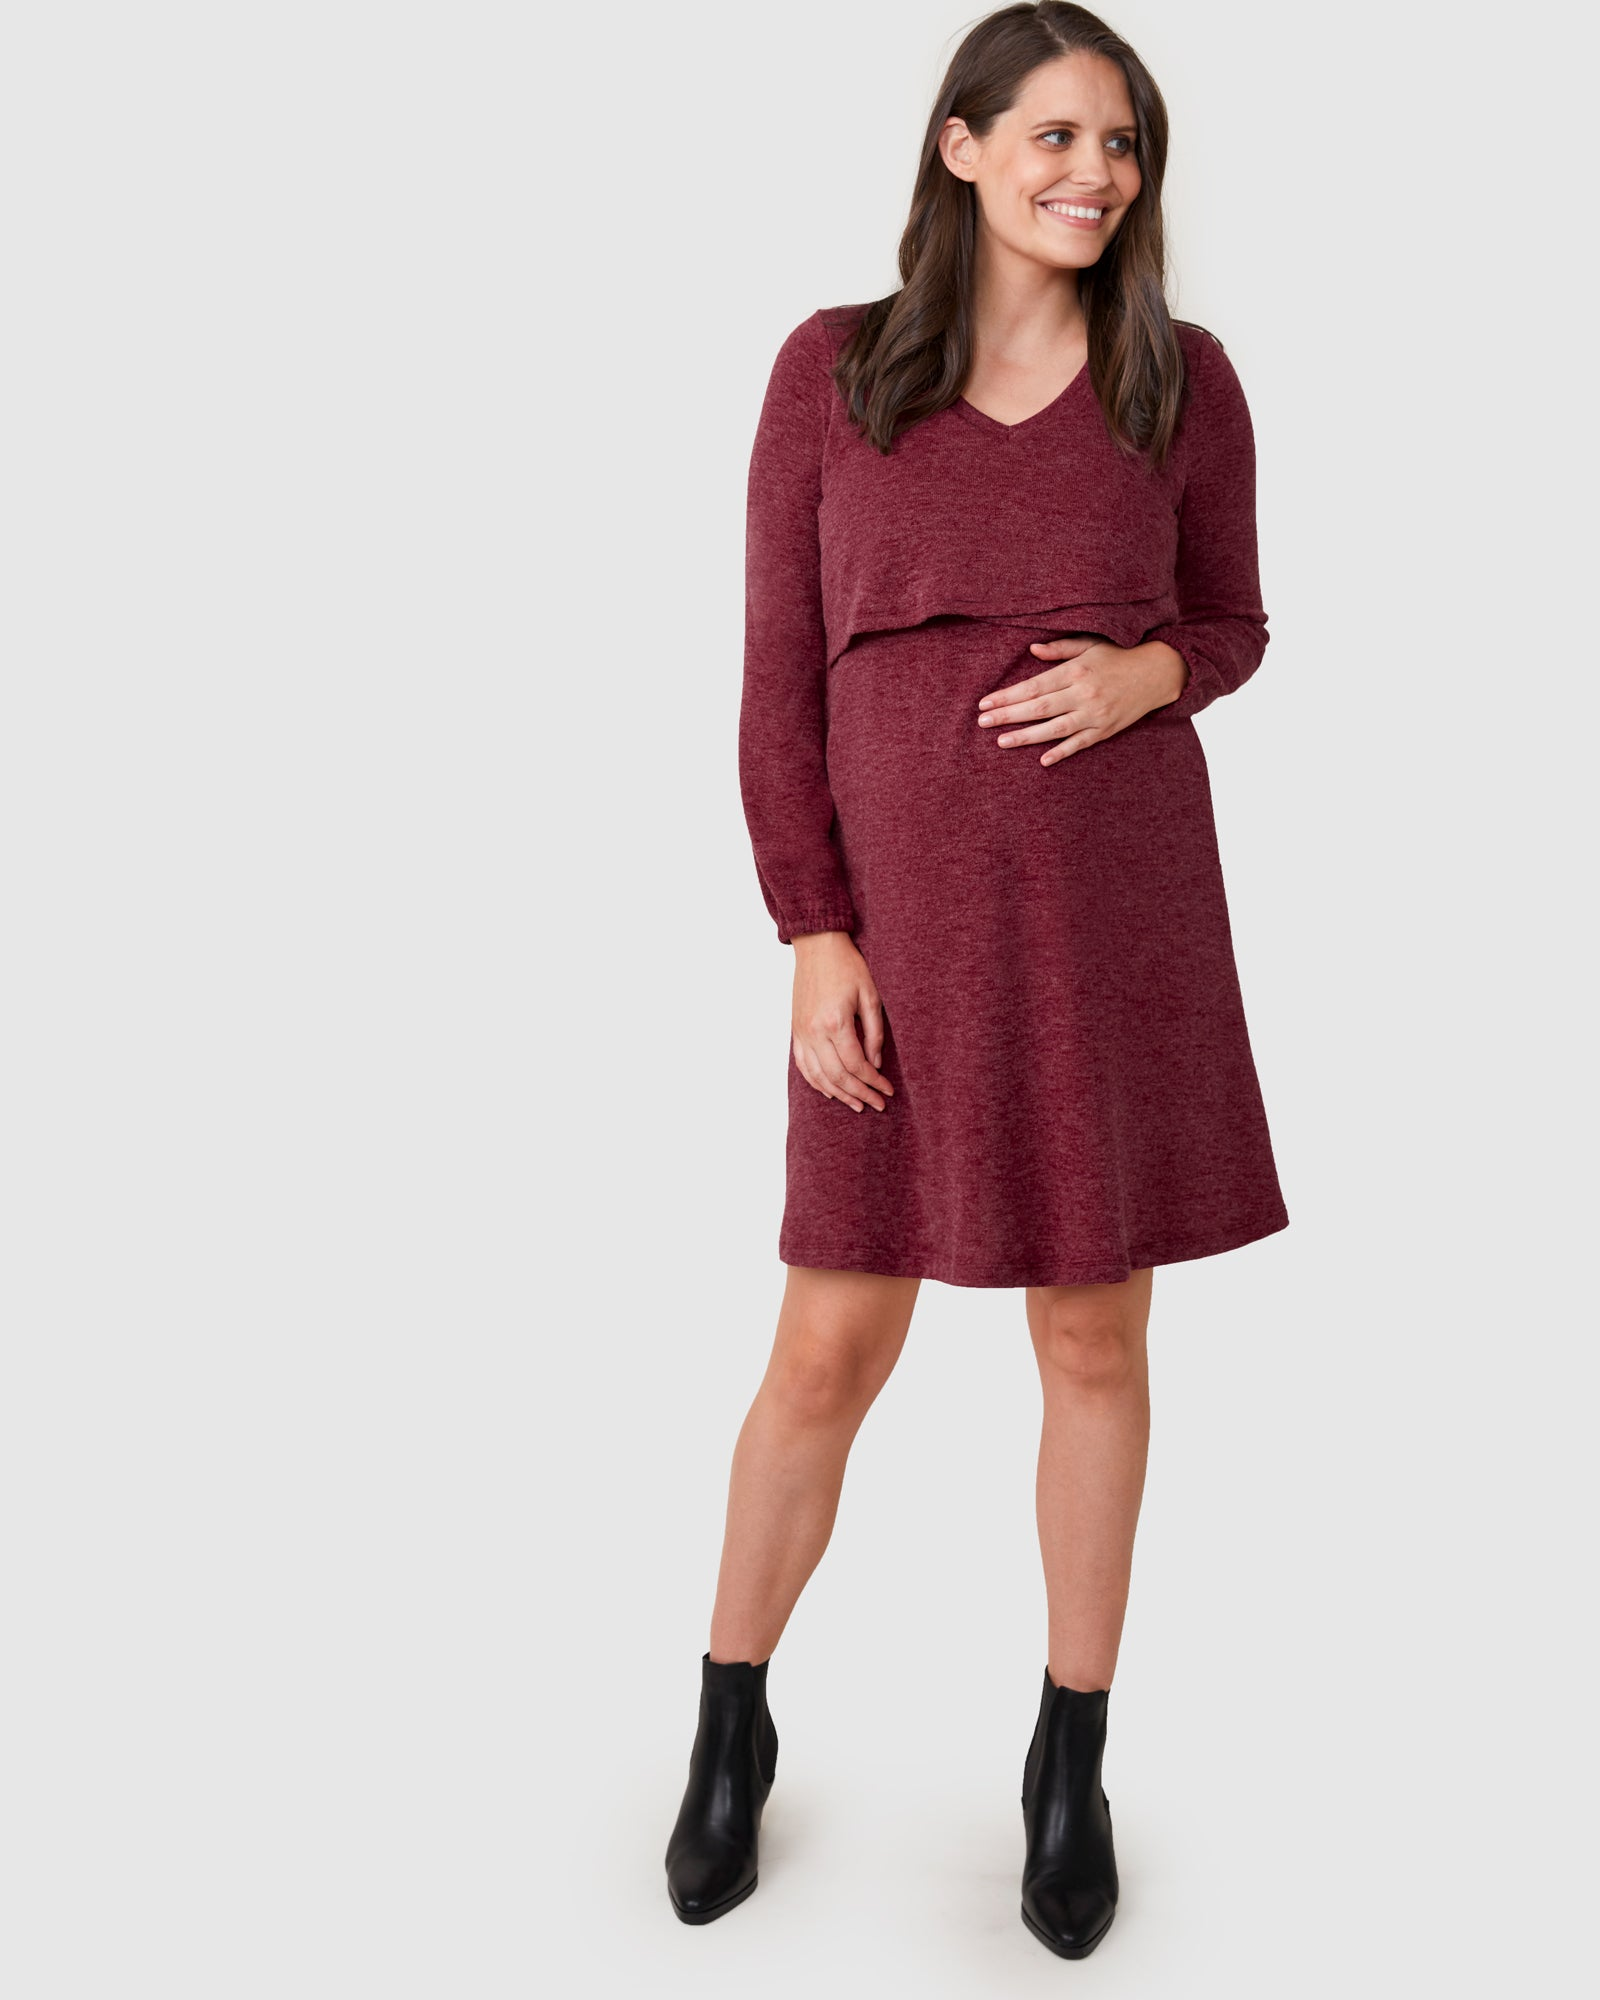 Hanna Nursing Dress